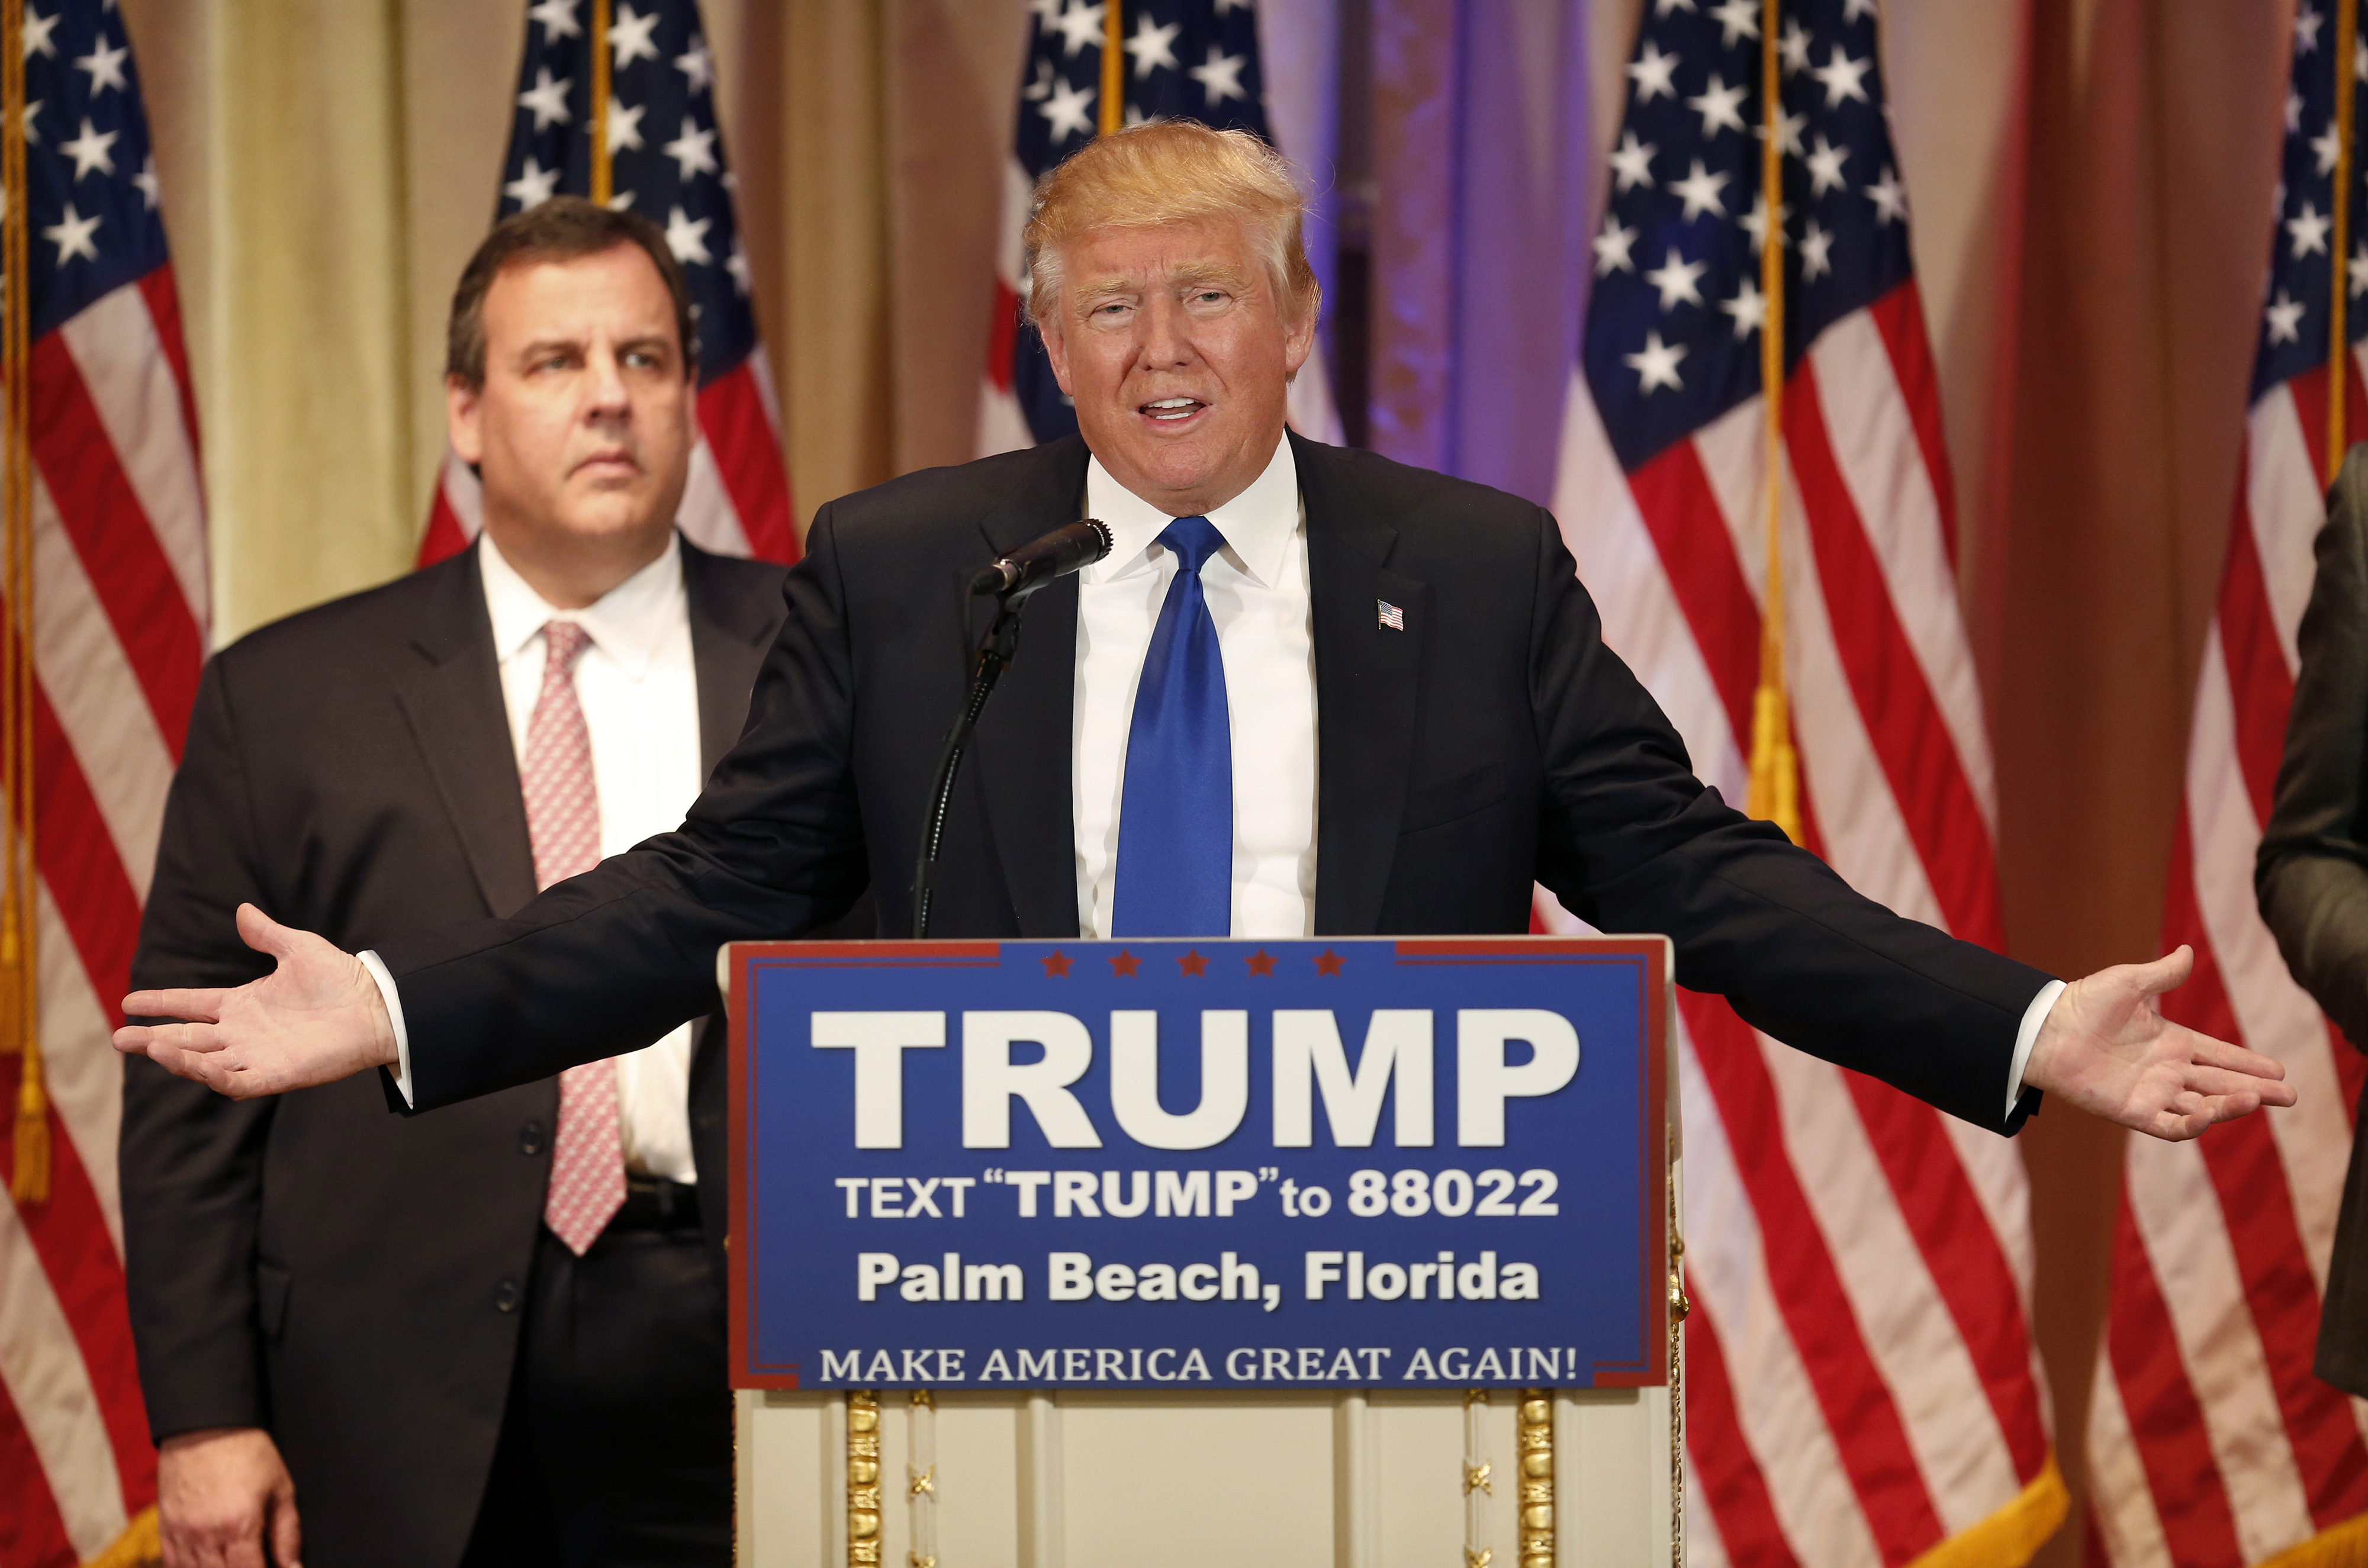 Donald Trump speaks on stage with Chris Christie in Palm Beach, Florida, on March 1, 2016.